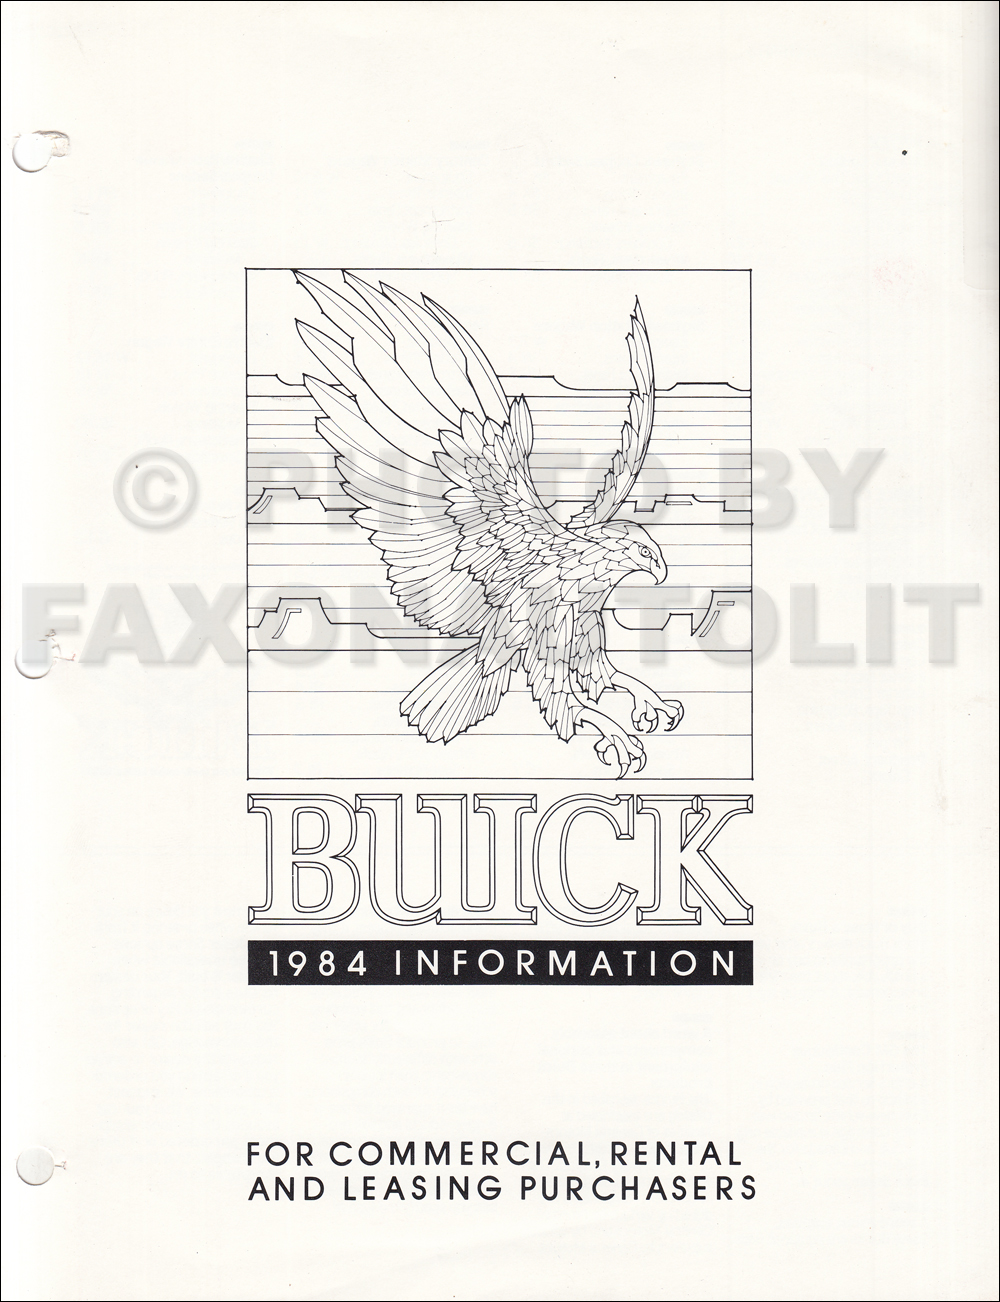 1984 buick original sales catalog riviera  t type  regal  lesabre